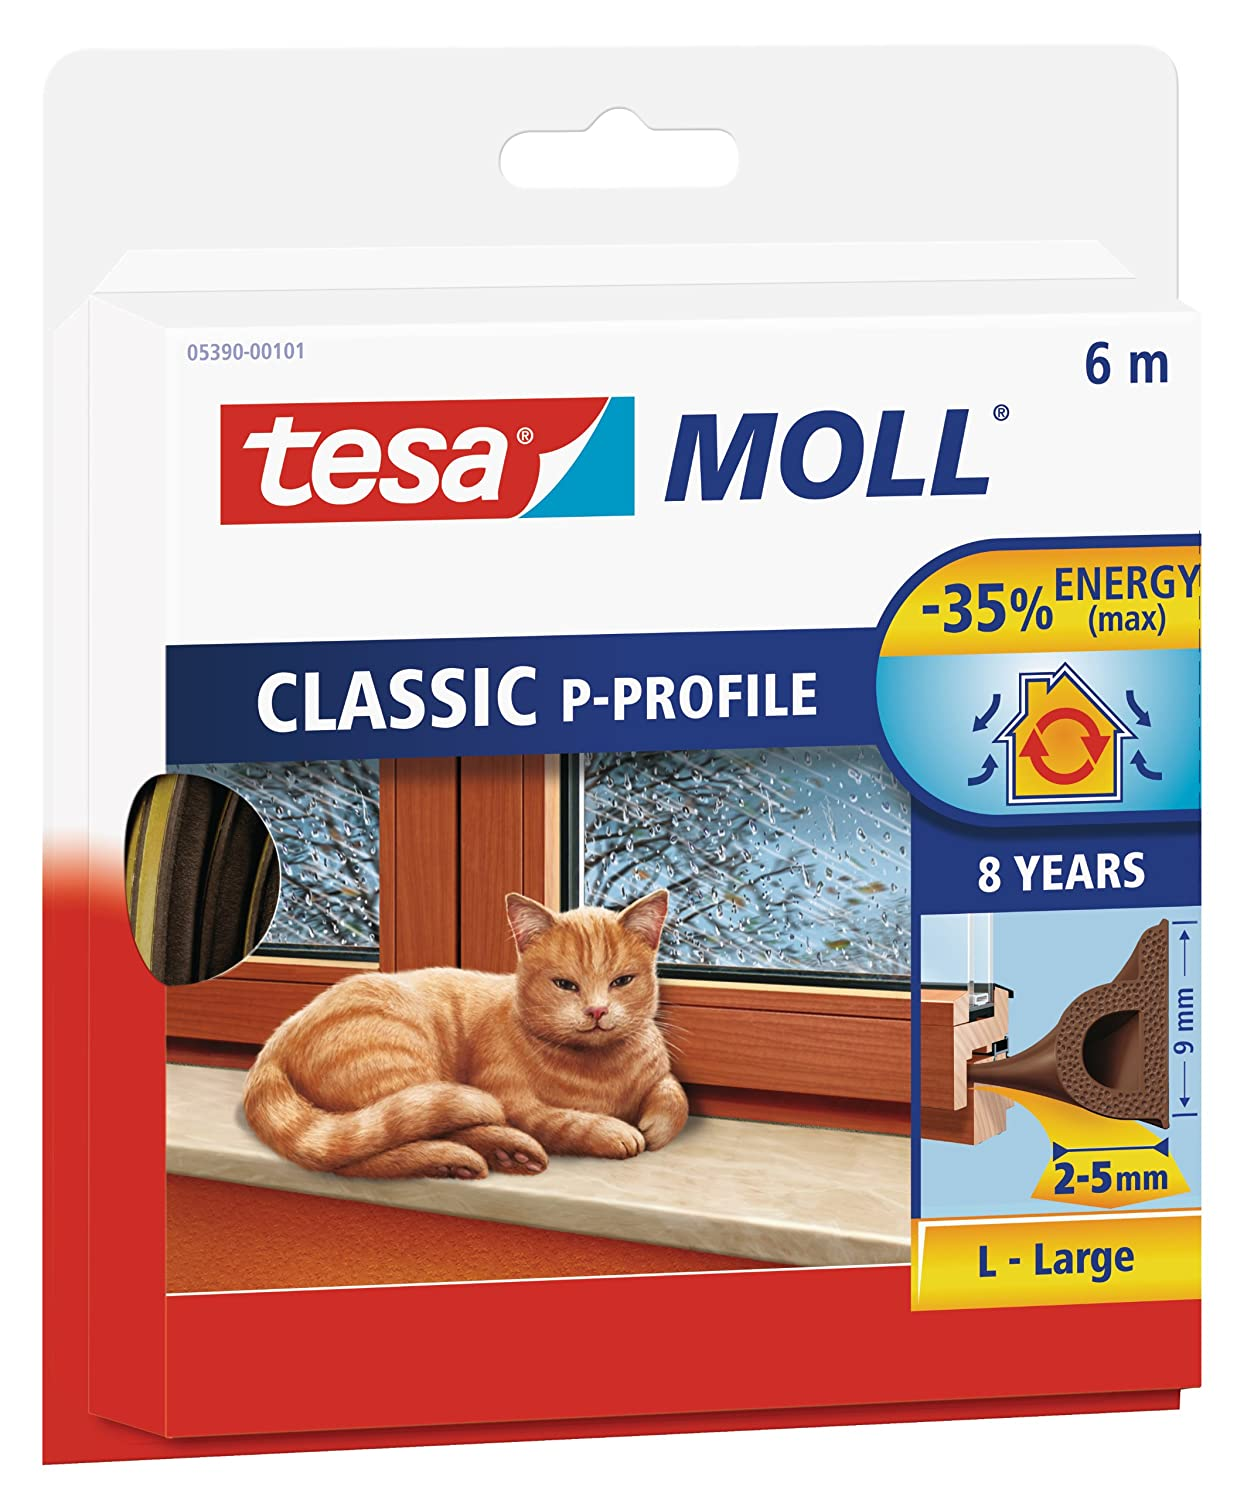 tesa UK P-Profile Draught Excluder for Doors and Widows 6 m x 9 mm - White 05390-00100-00